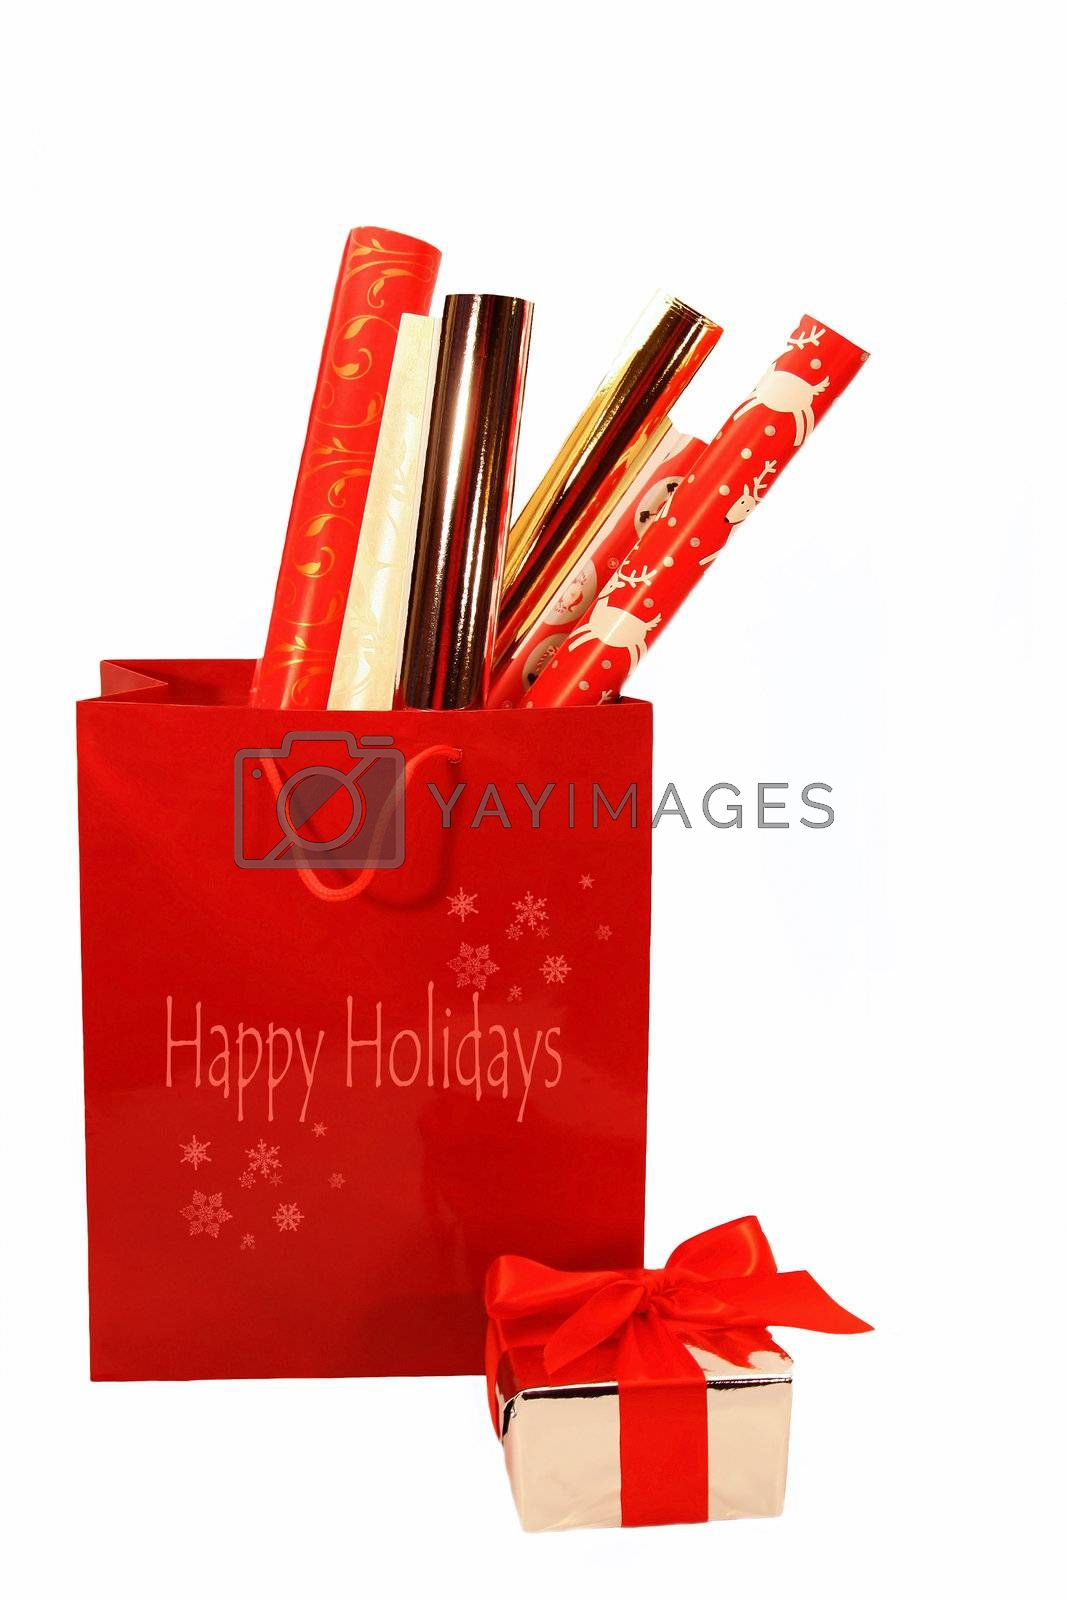 Holiday wrappings by Sandralise